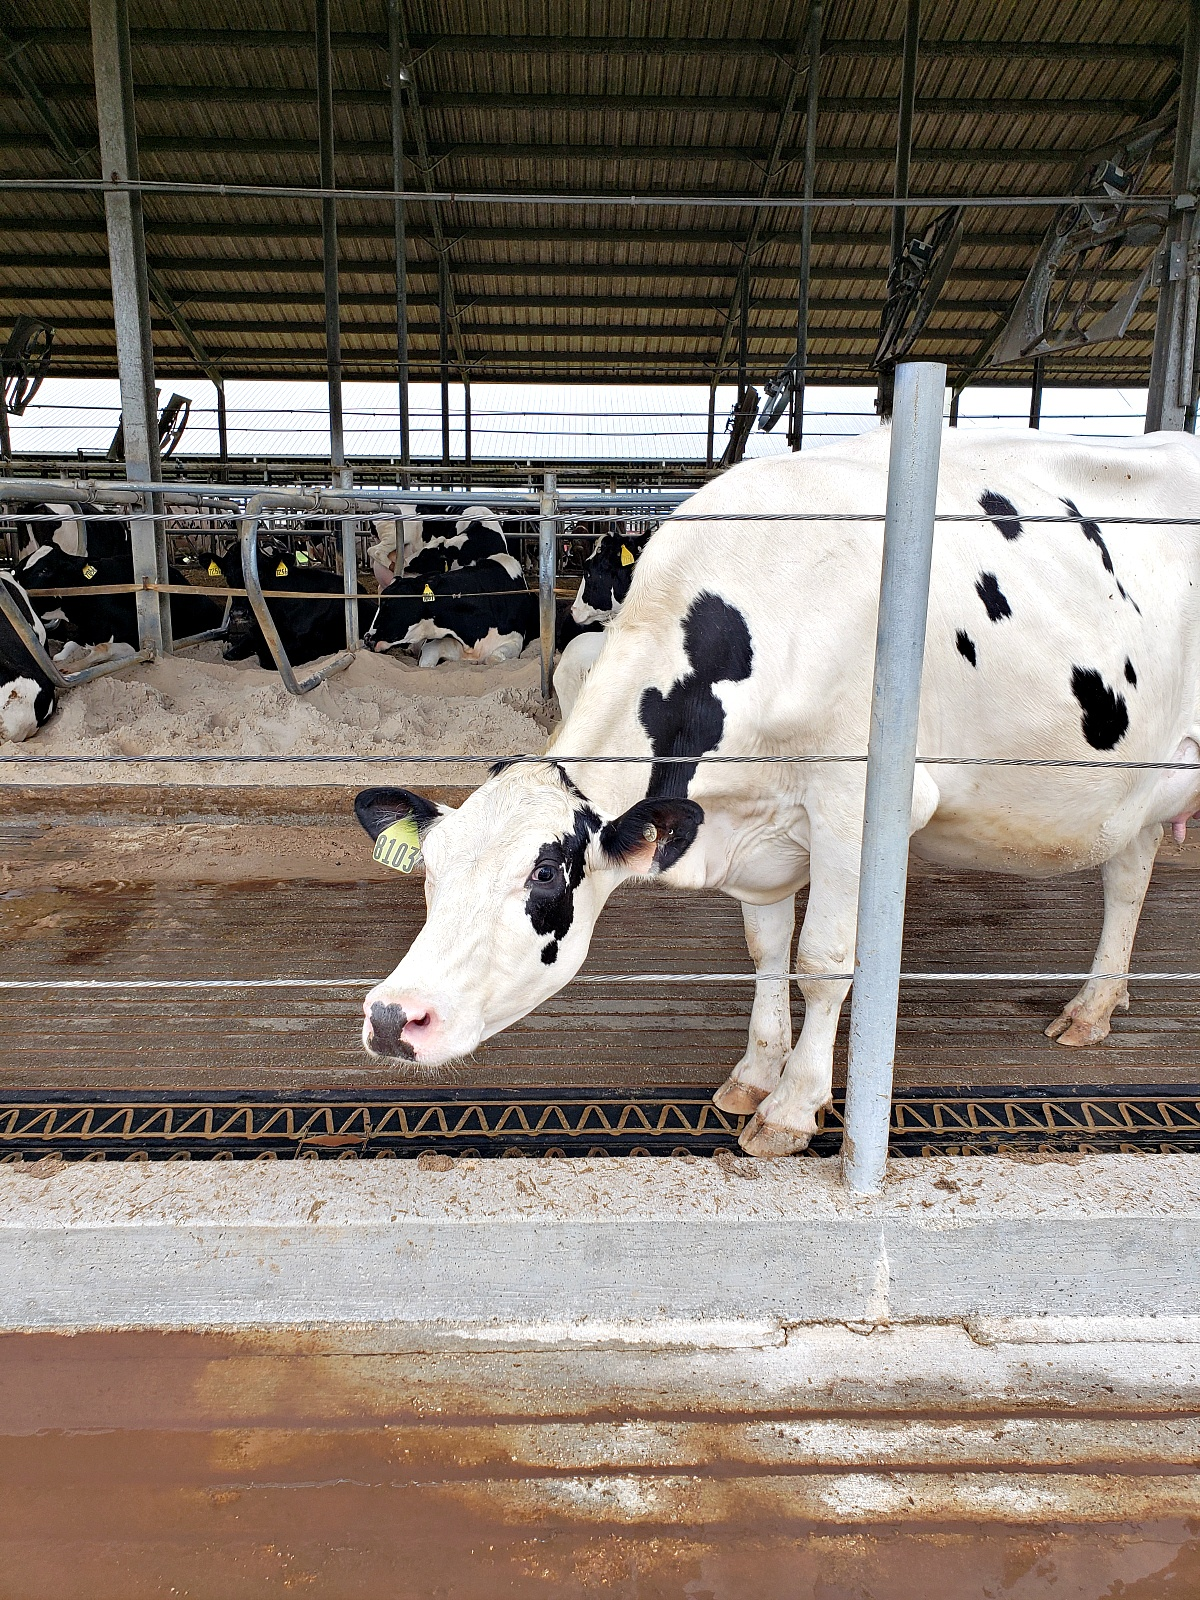 Where Does Milk Come From? Pregnant Cow